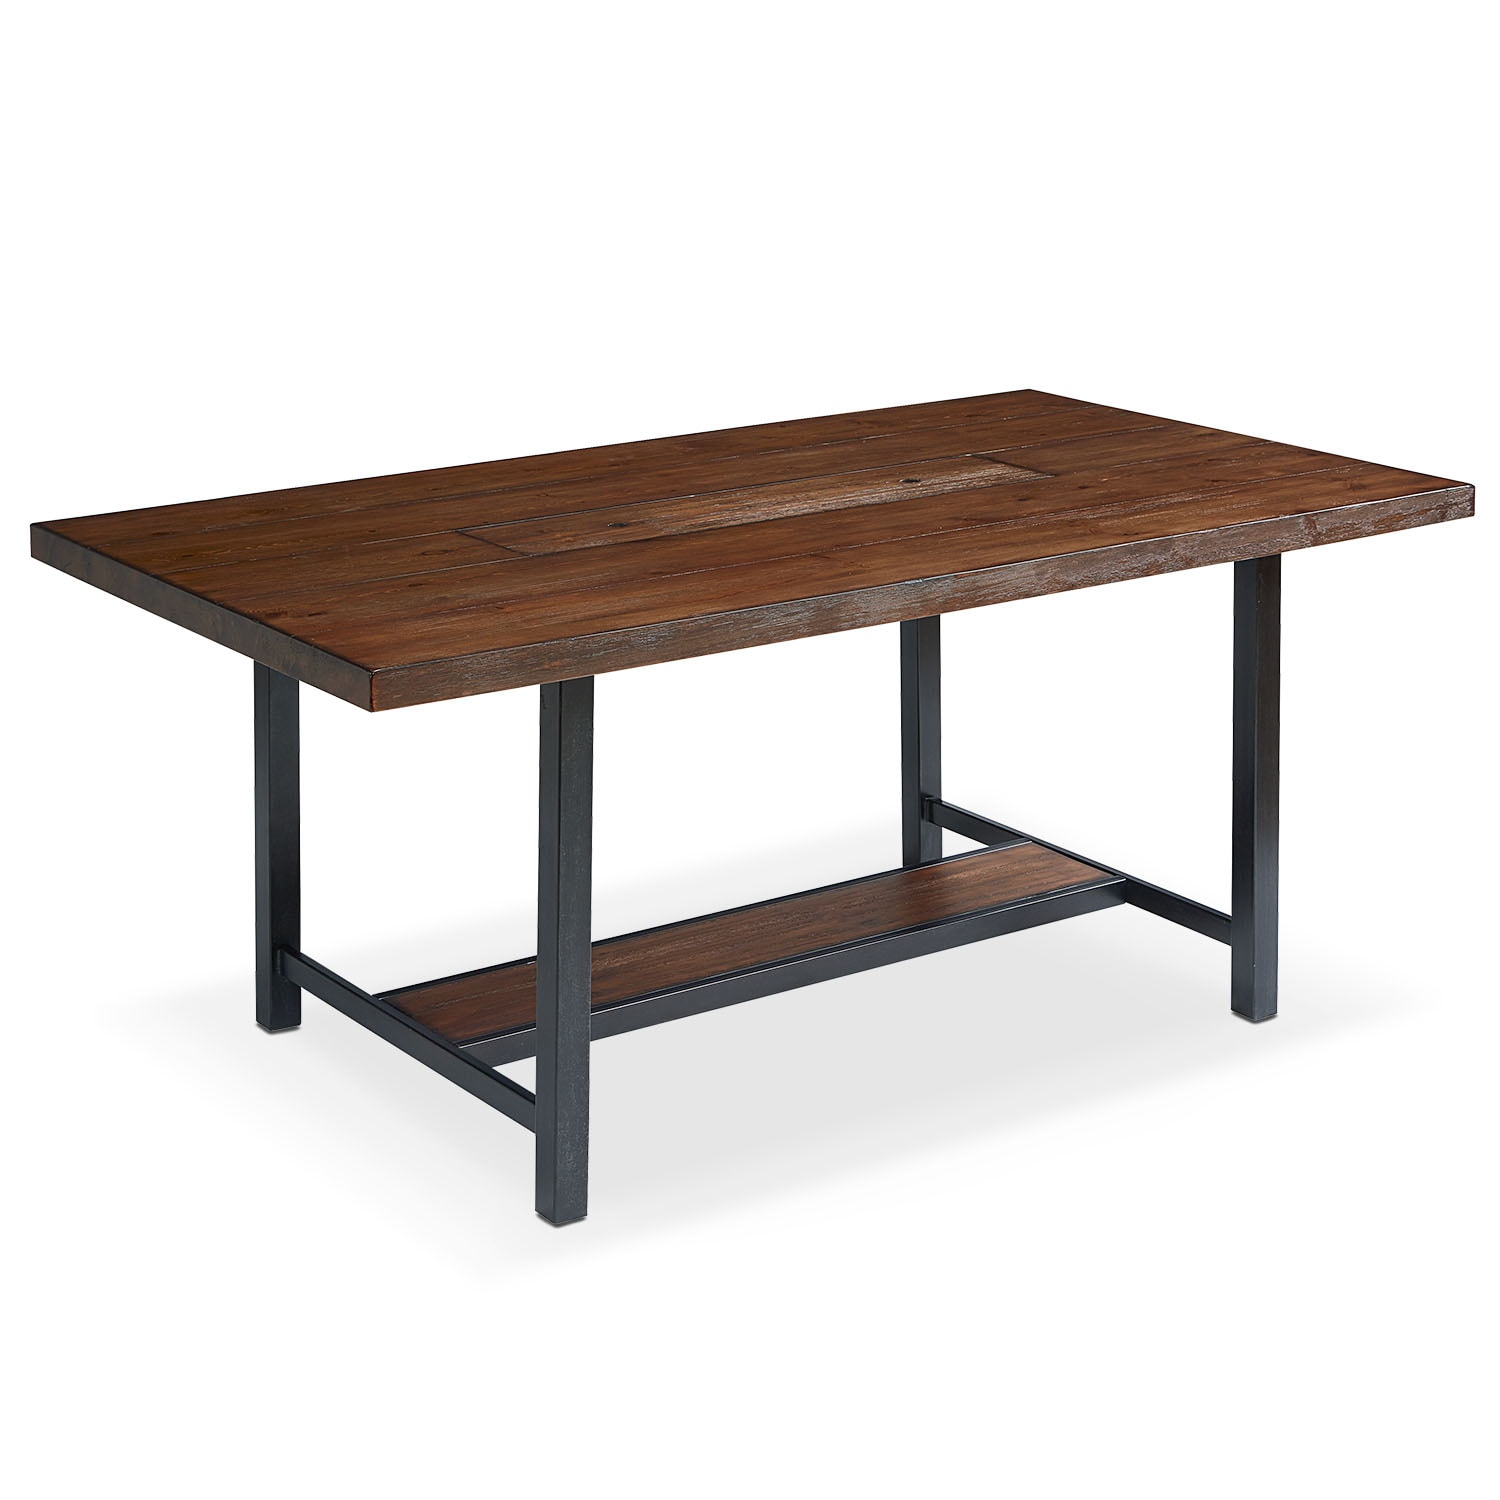 "Dining Room Furniture - Industrial Framework 84"" Dining Table - Milk Crate"